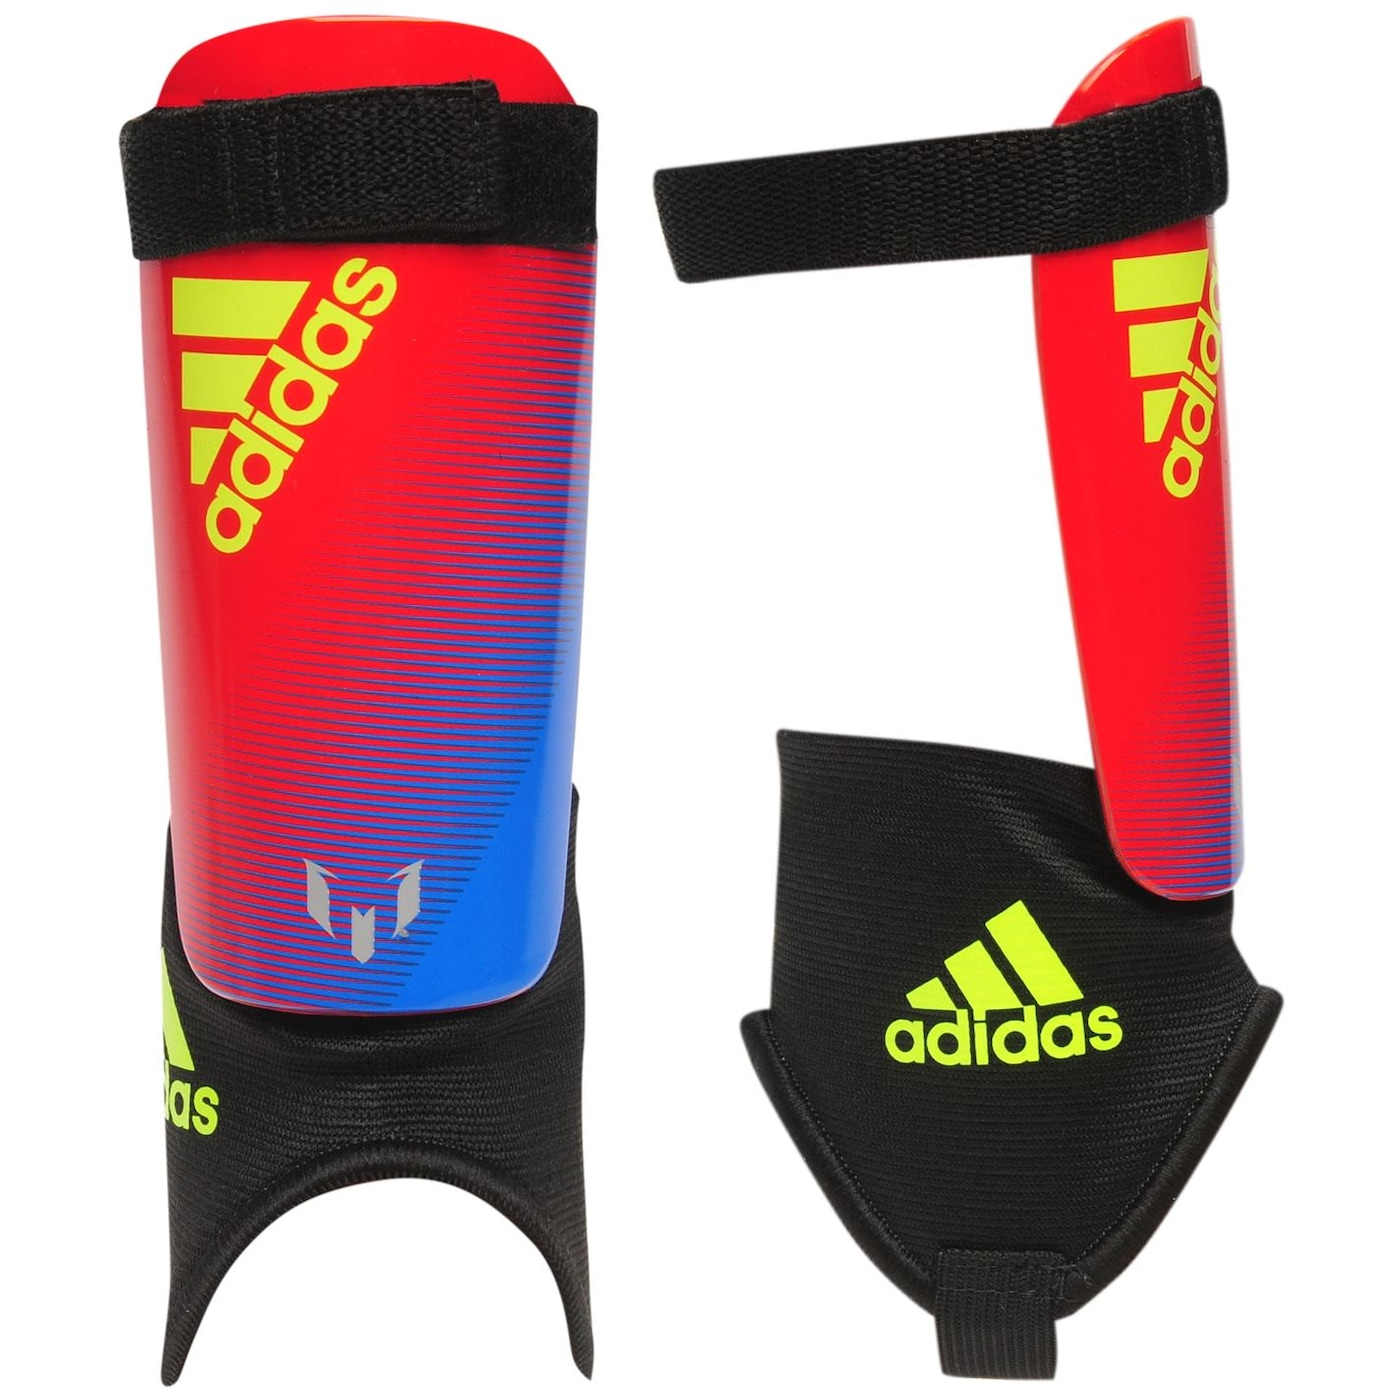 Adidas Messi 10 Shin Guards Junior Boys